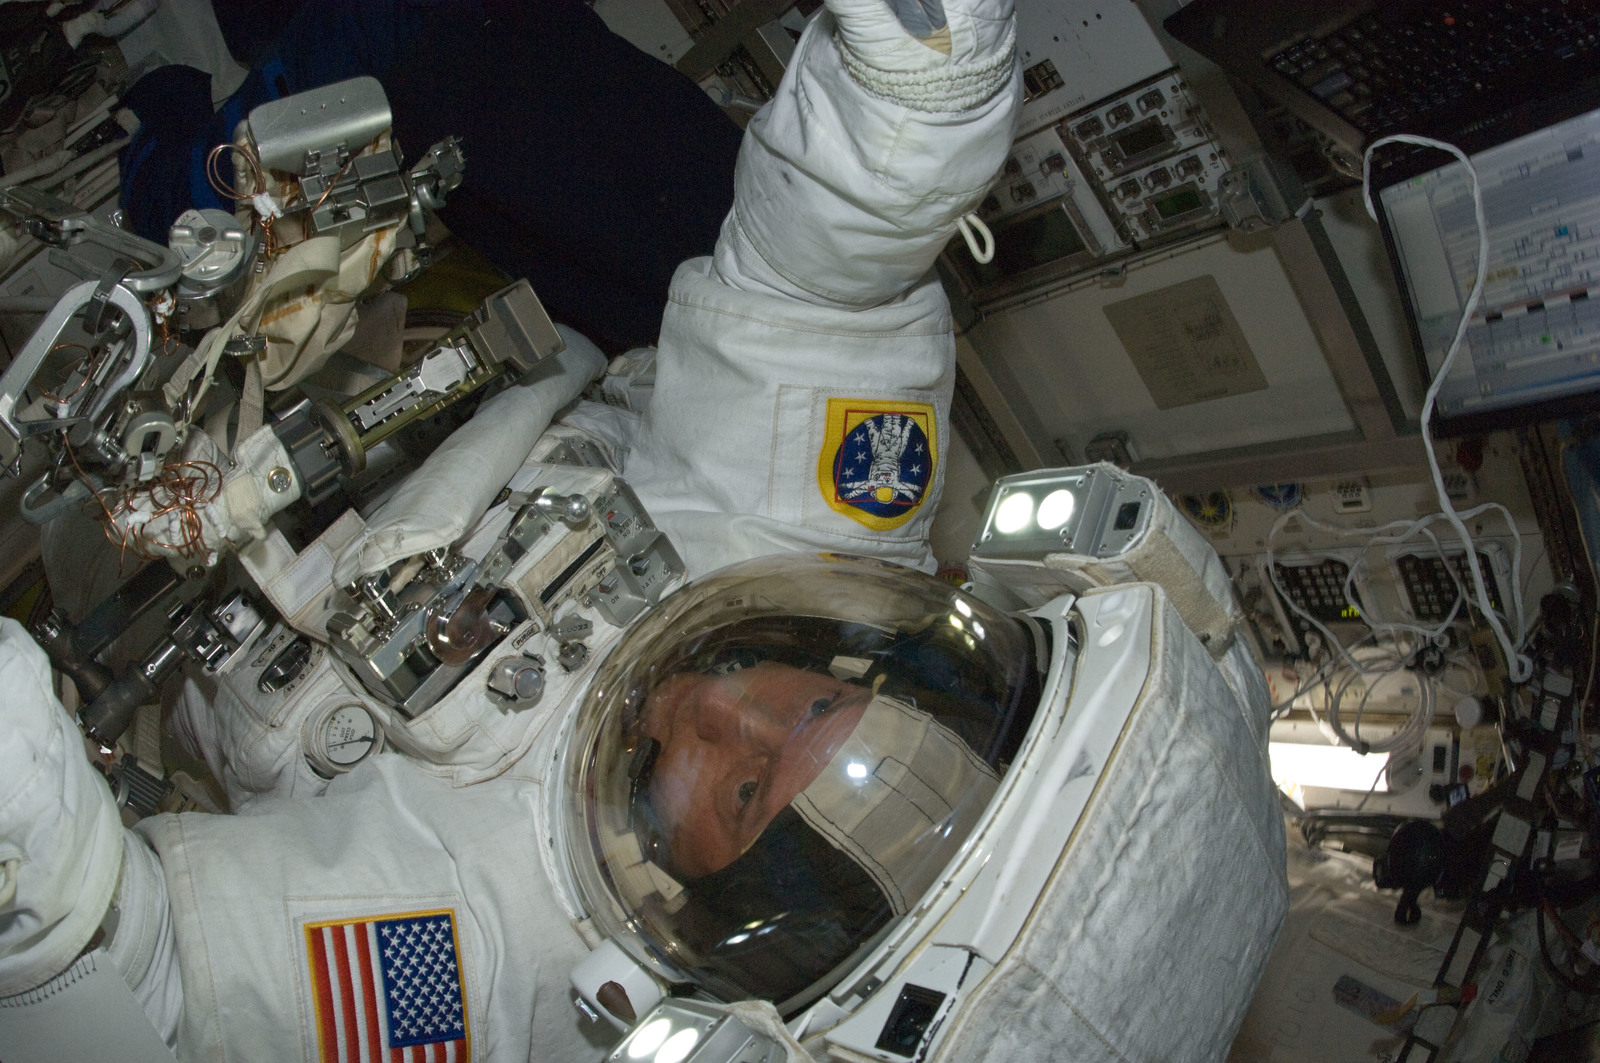 S134E009203 - STS-134 - STS-134 MS Fincke in the Airlock at the end of EVA-3